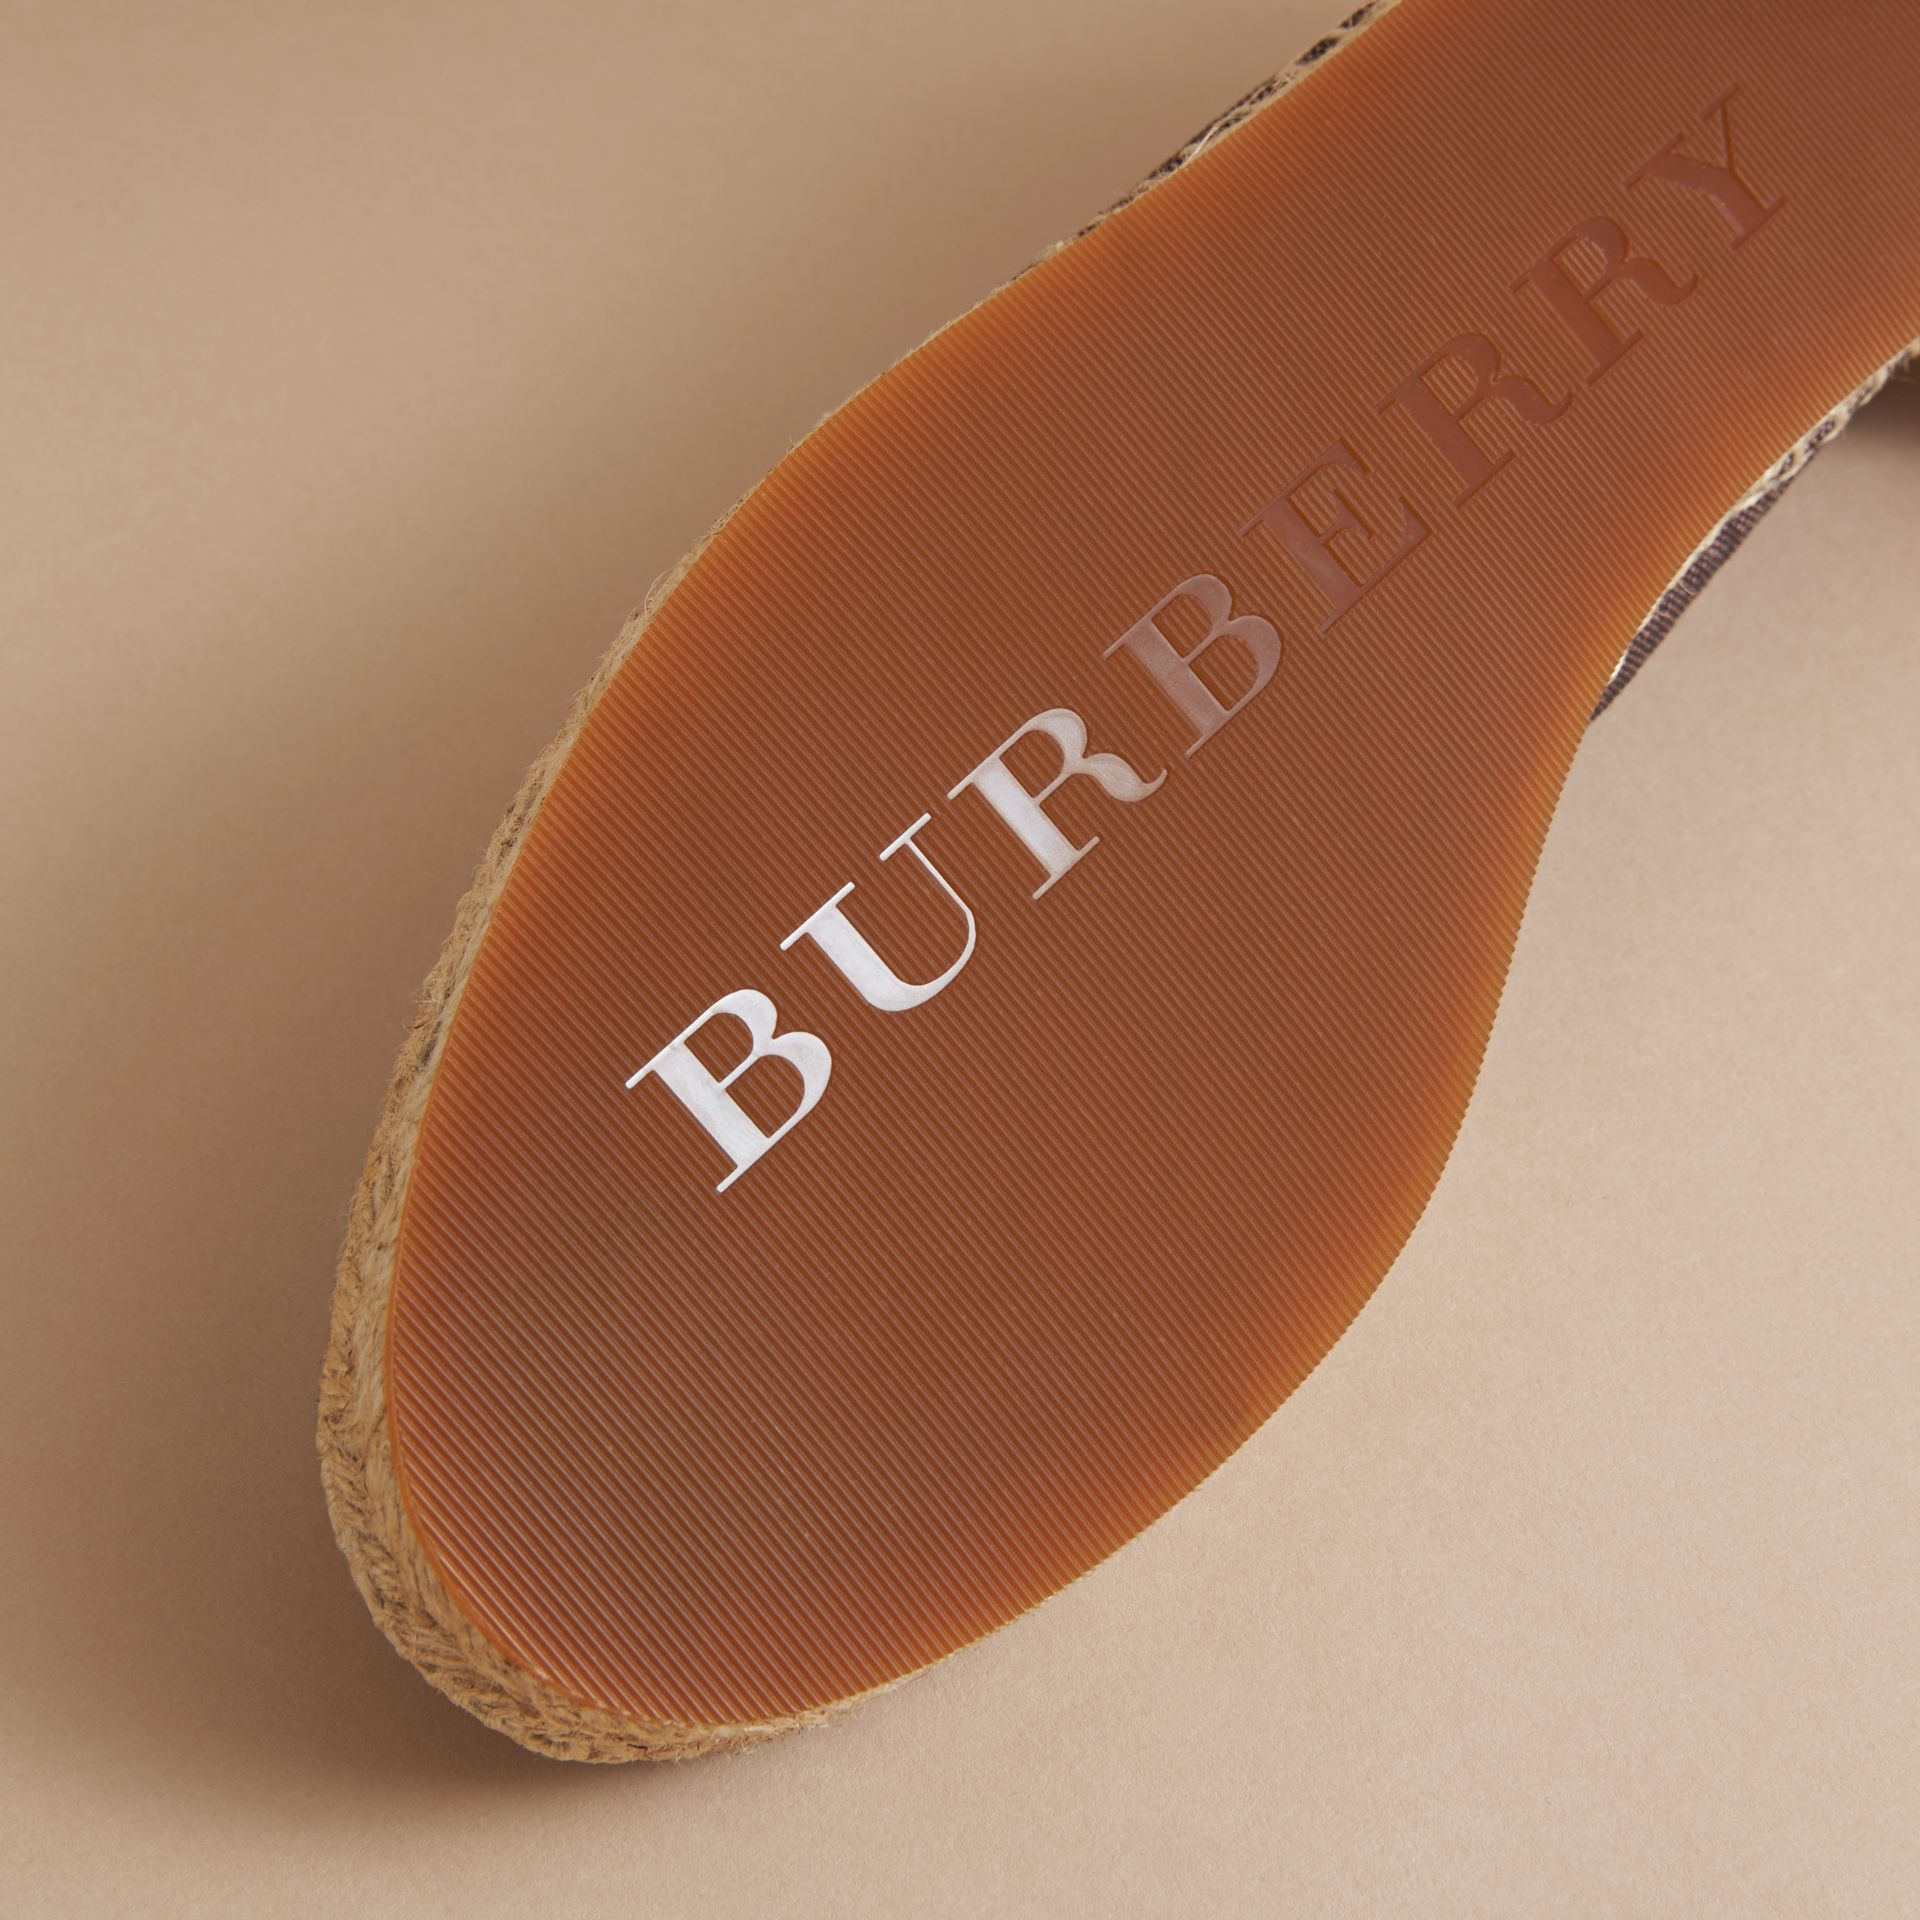 Check Linen Cotton Espadrilles in Cerise Purple - Women | Burberry - gallery image 5